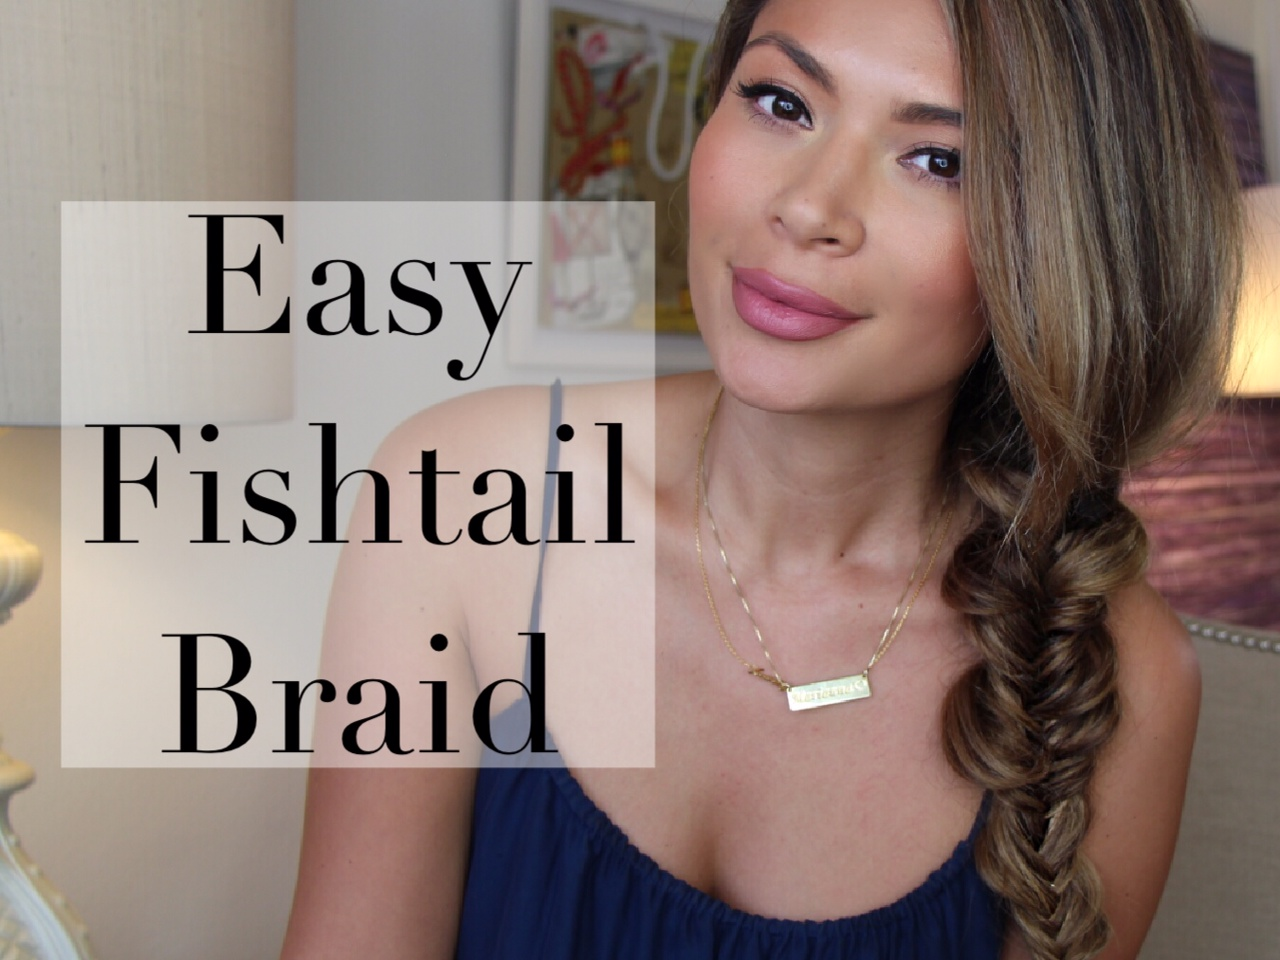 Braid Hair Tutorials For Long Hair Braid Hair Tutorial